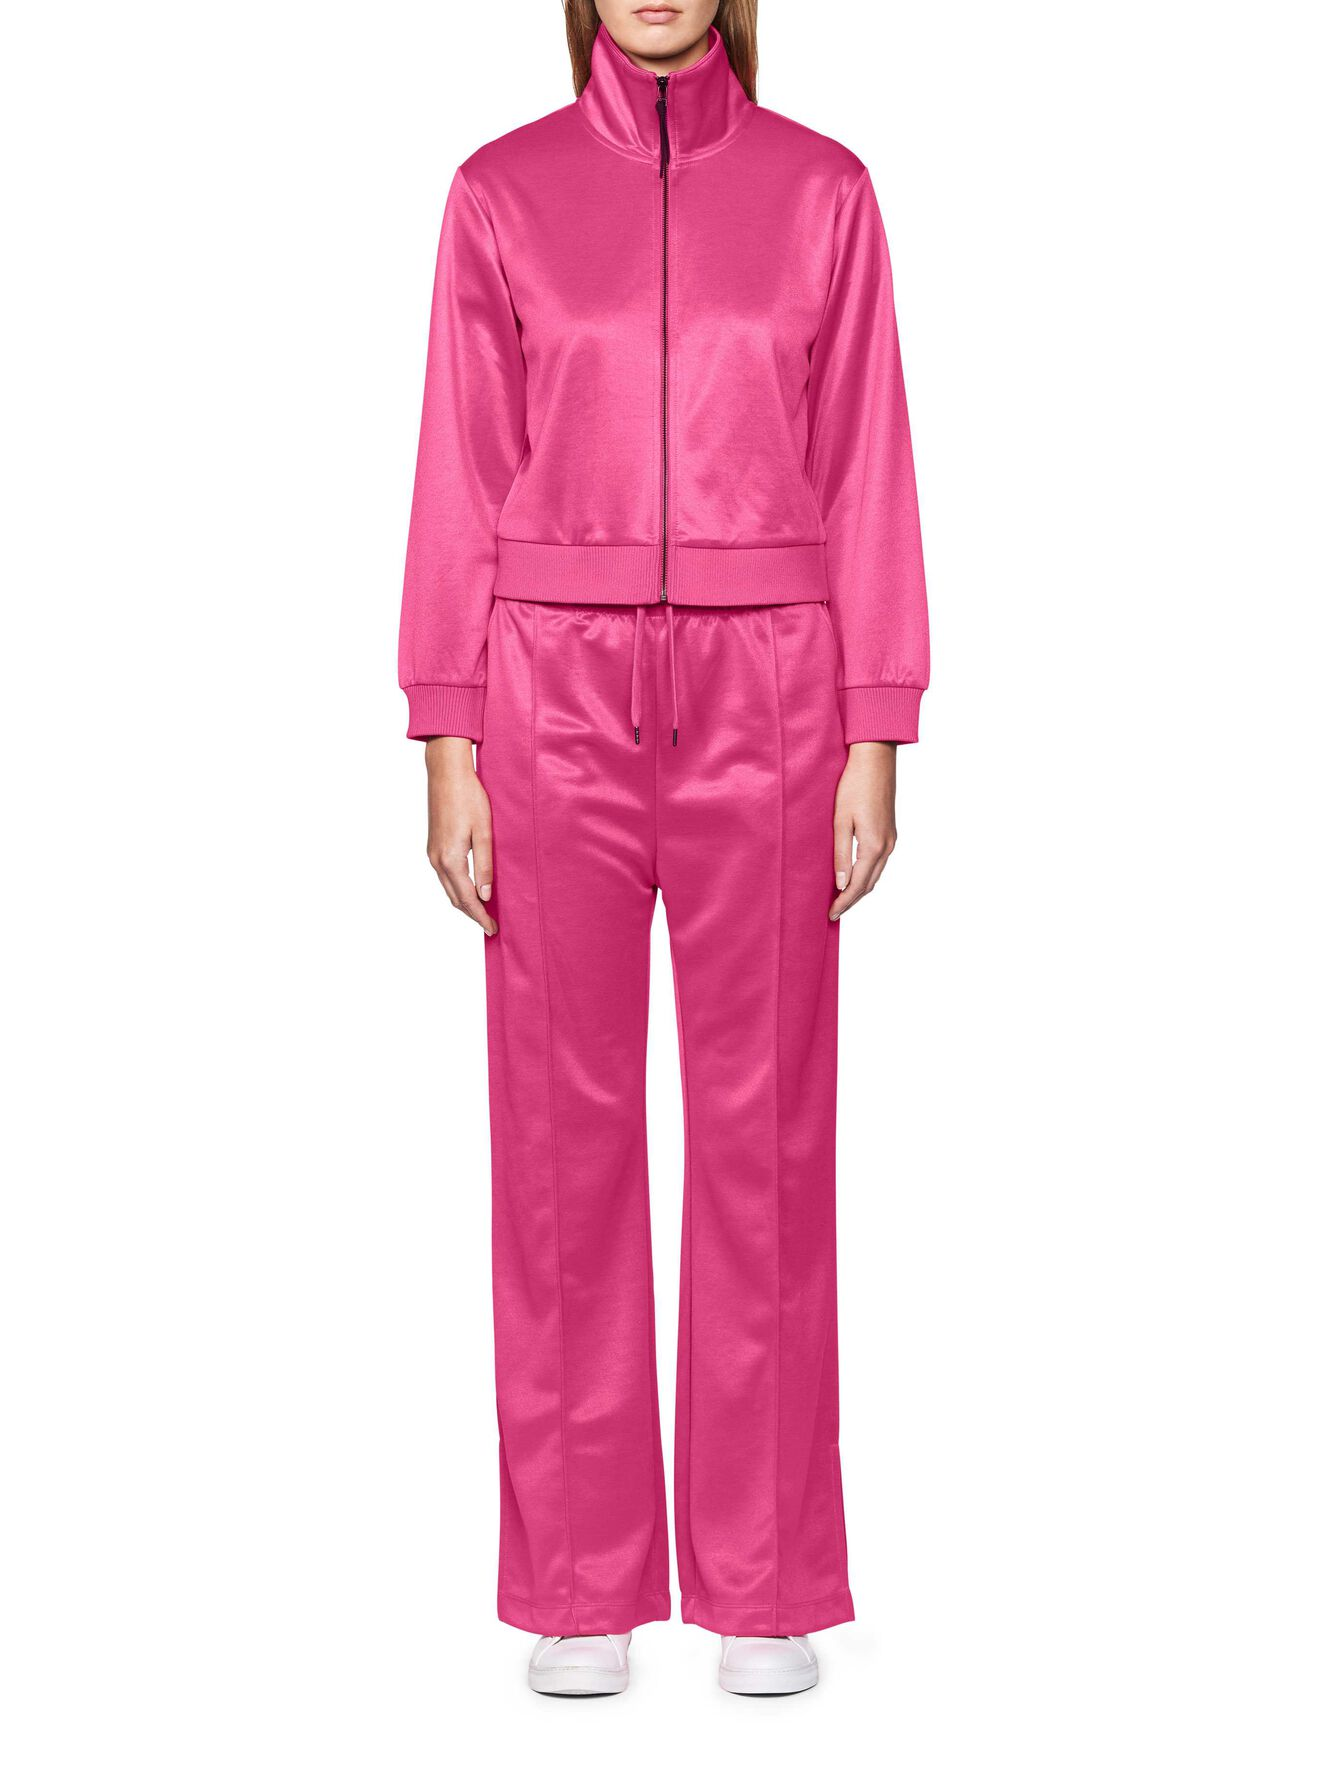 HUSTLE TROUSERS in Dk Pink from Tiger of Sweden